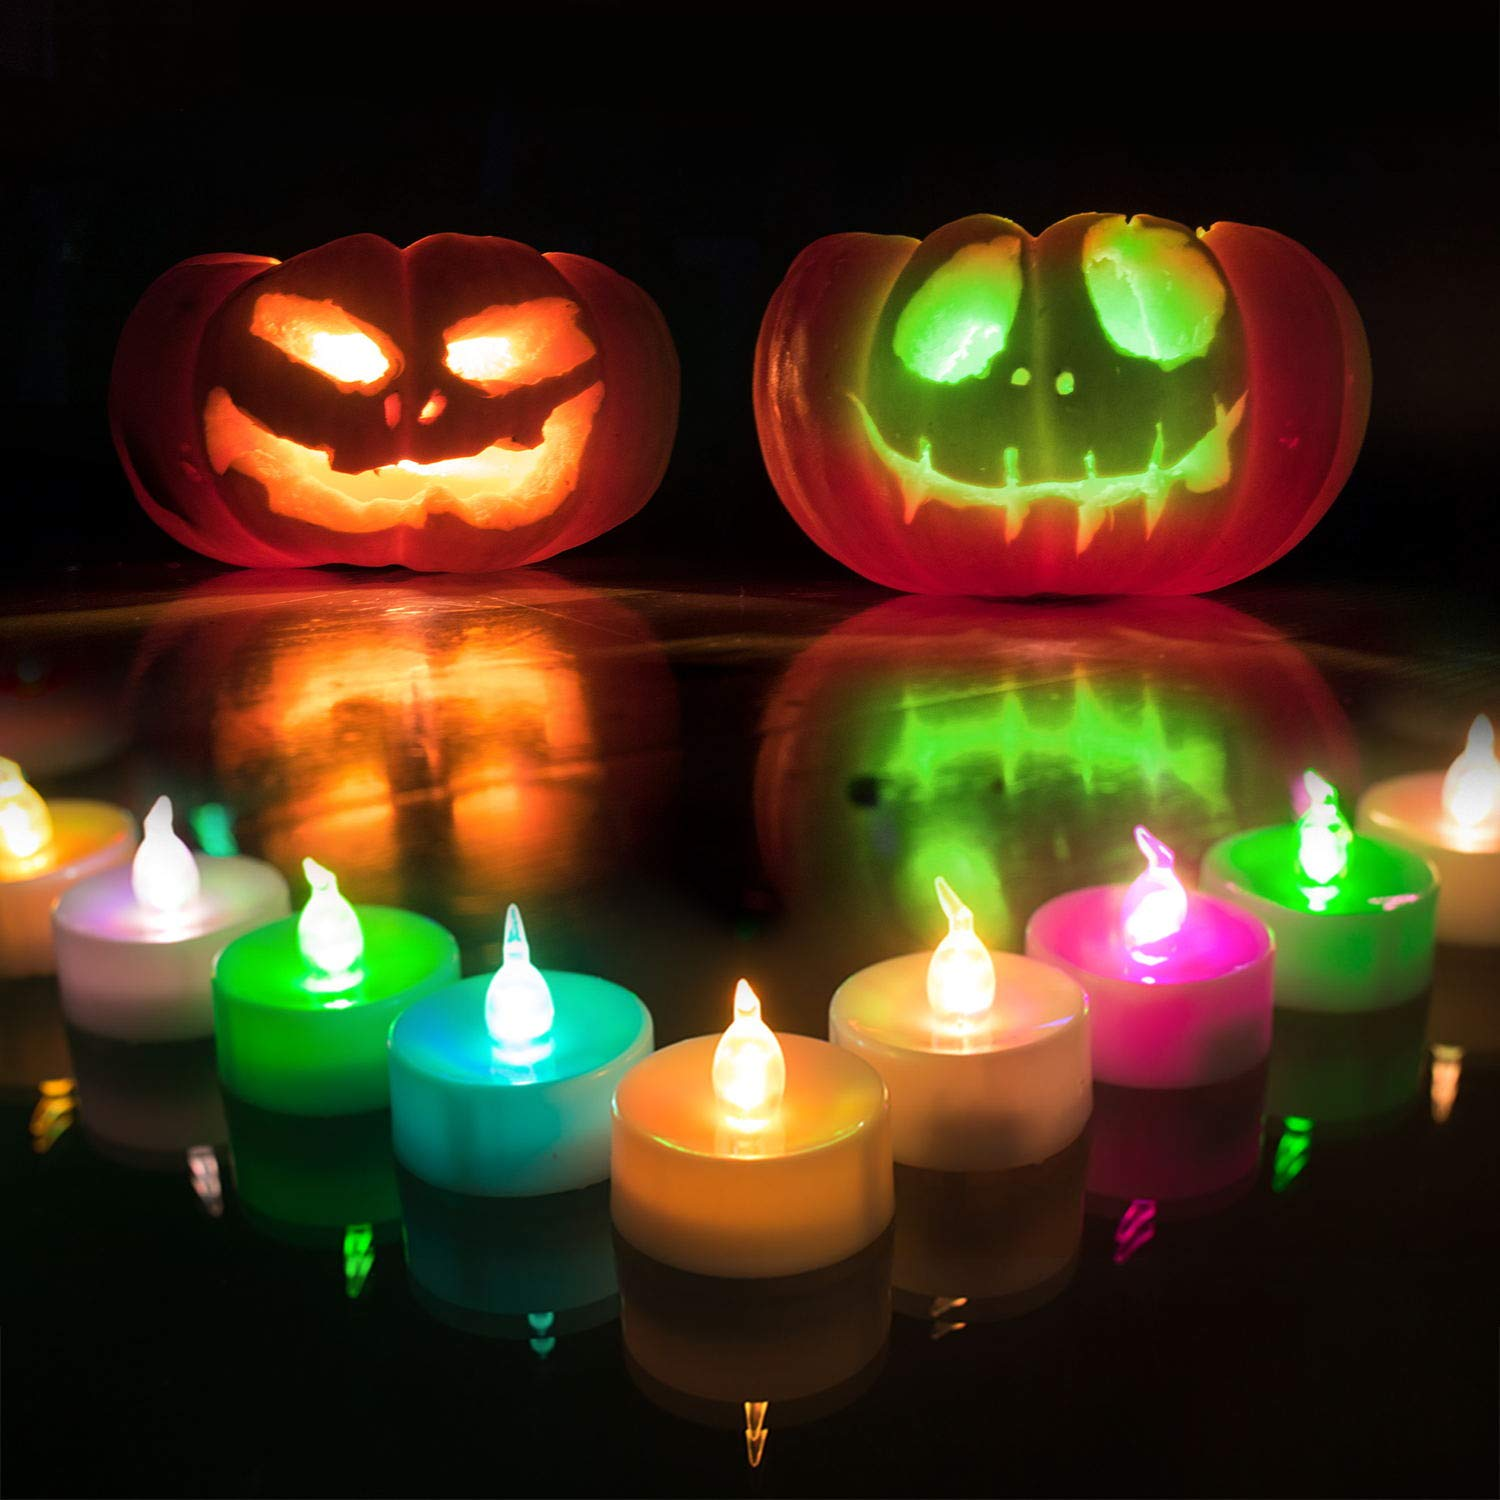 Homemory 24 Pack LED Tea Lights Candles, 7 Color Changing Flameless Tealight Candle, Long Lasting Battery Operated Fake Candles for Halloween, Party, and Christmas by Homemory